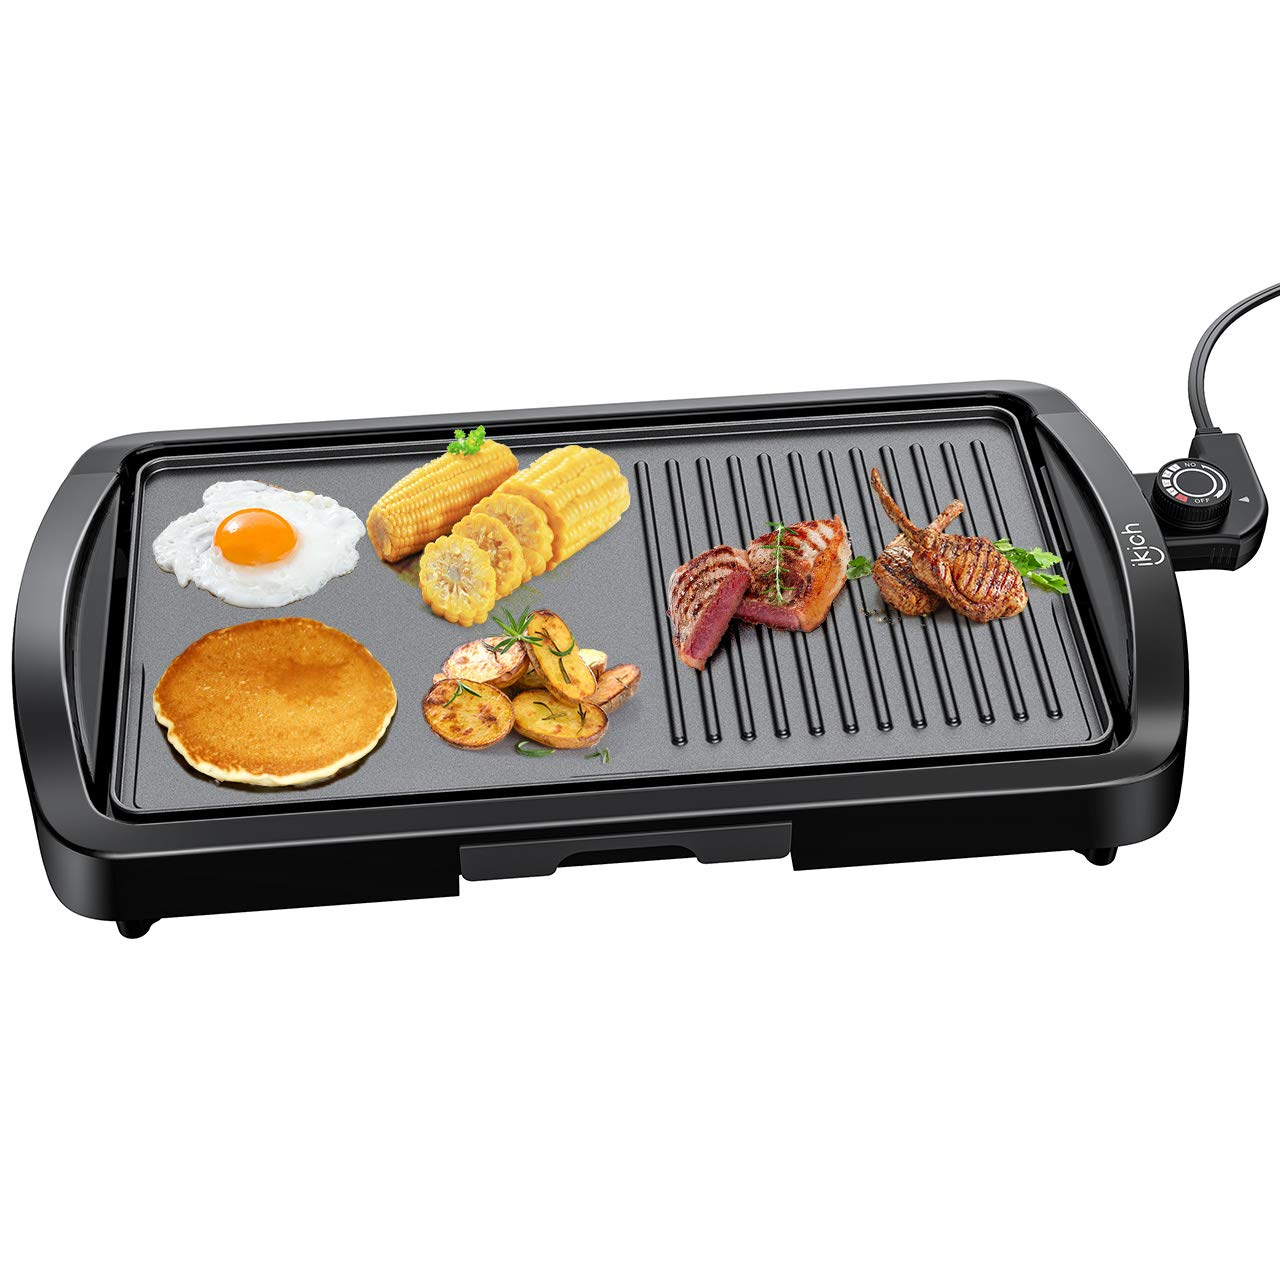 Electric Griddle, IKICH 2-in-1 Grill Griddle, 1600W Smokeless Nonstick Indoor Grill with Drip Tray, Family-sized Pancake grill for Indoor, Outdoor, Camping, Even Heating, Cool-touch Handle,20.6'' Size